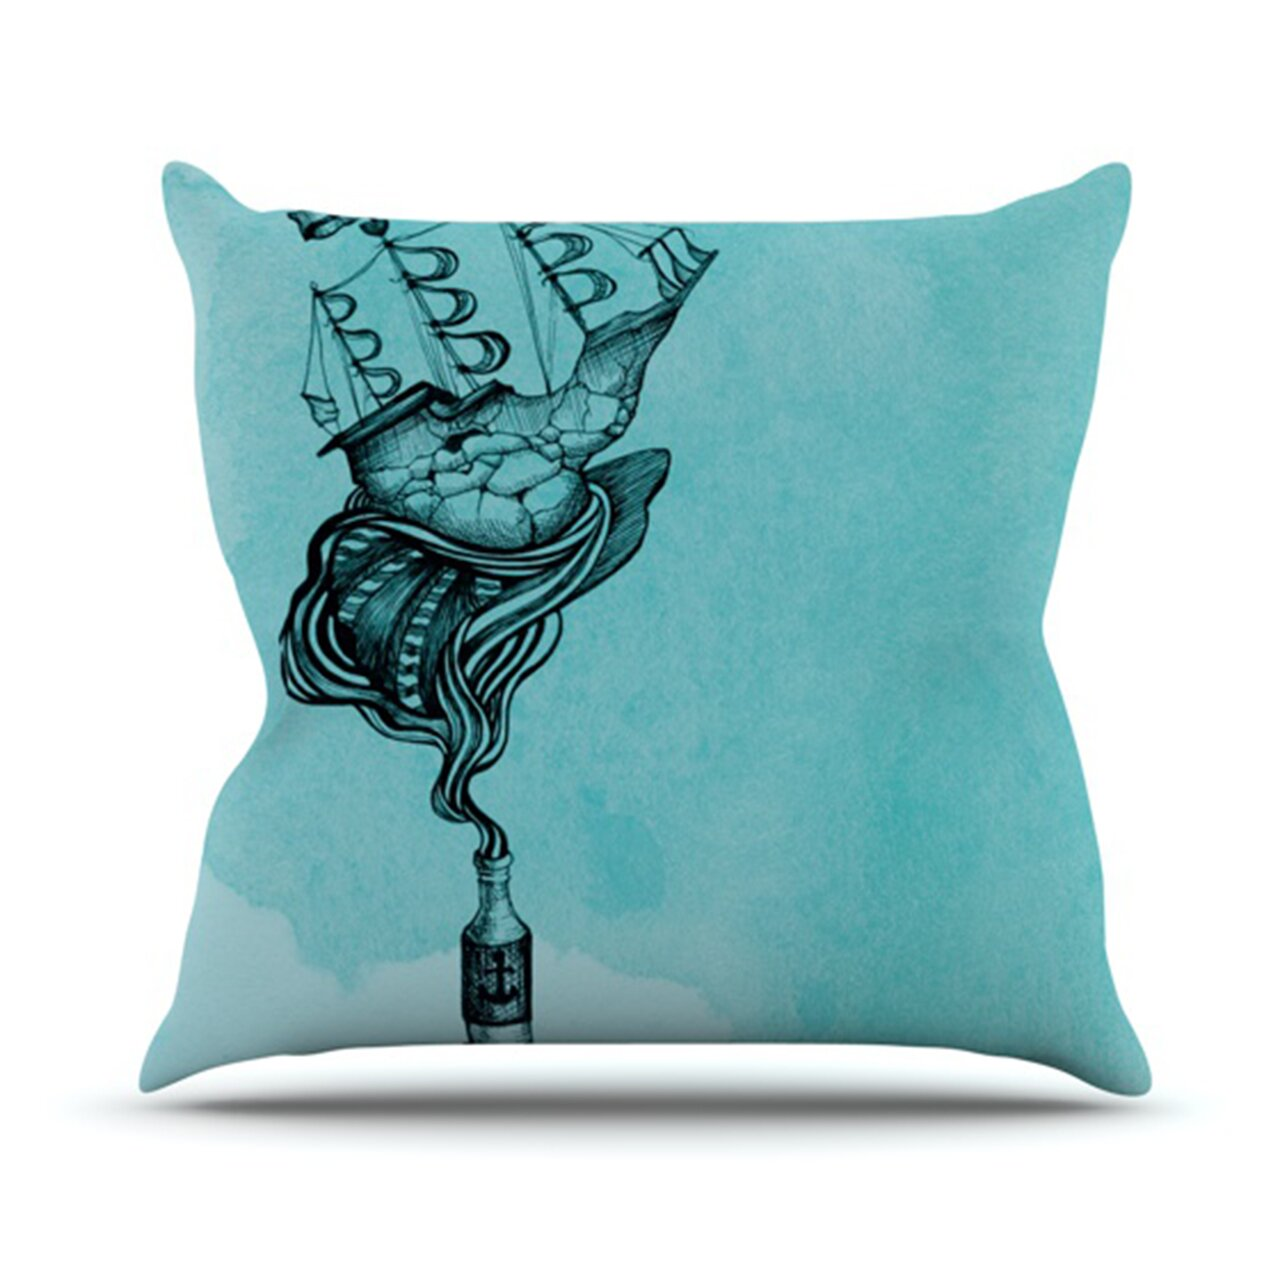 Wayfair Teal Throw Pillows : KESS InHouse All Aboard Throw Pillow Wayfair